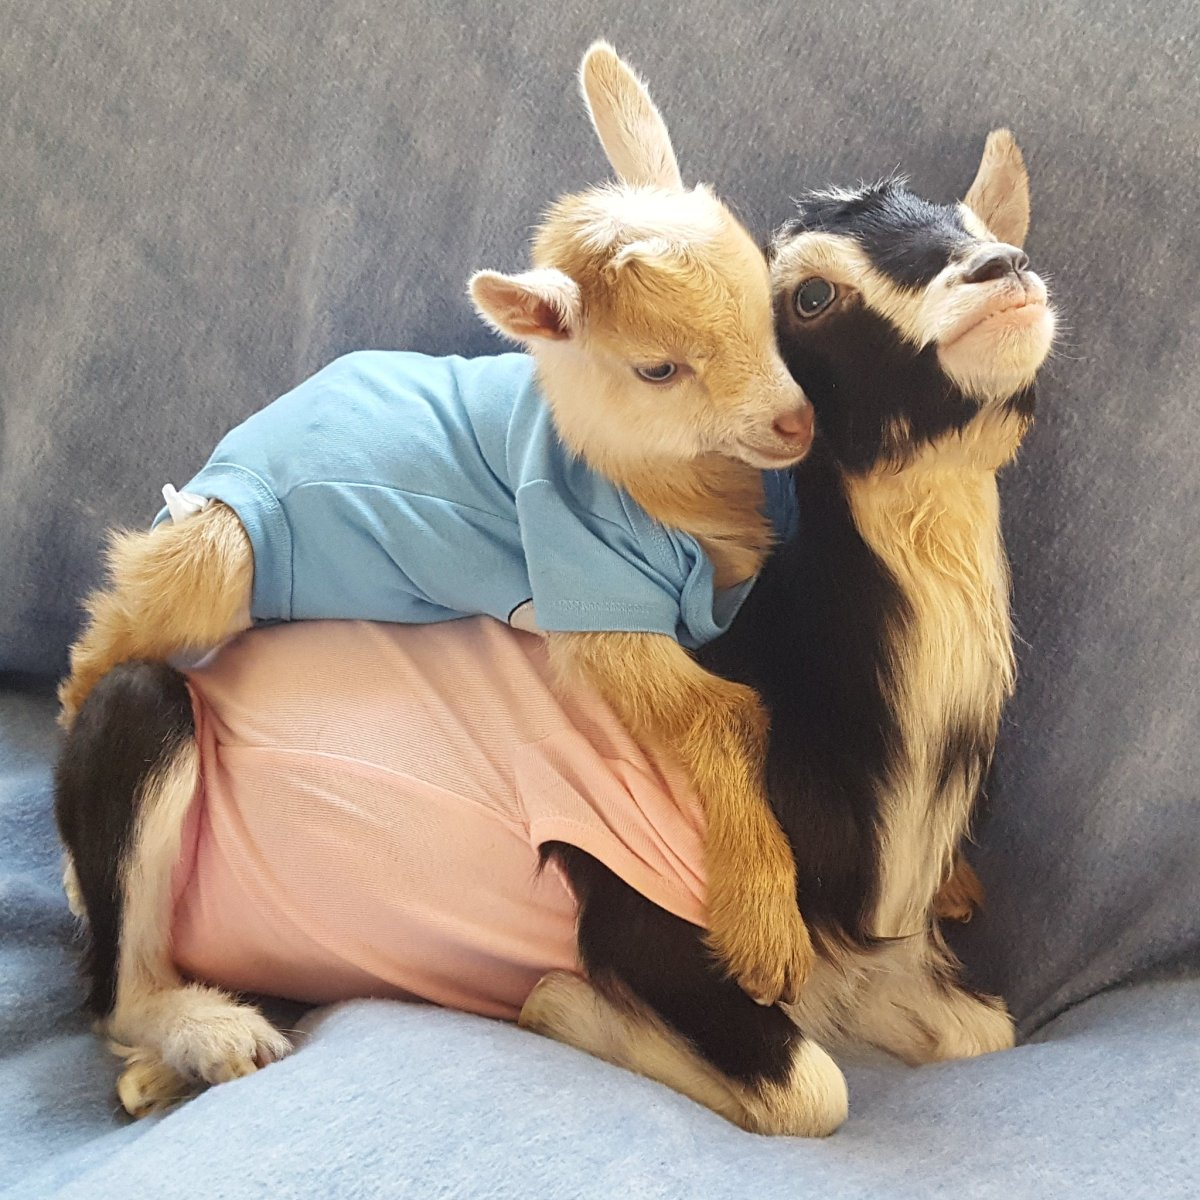 Pocket Resting on Polly - Source: Twitter/Goats of Anarchy